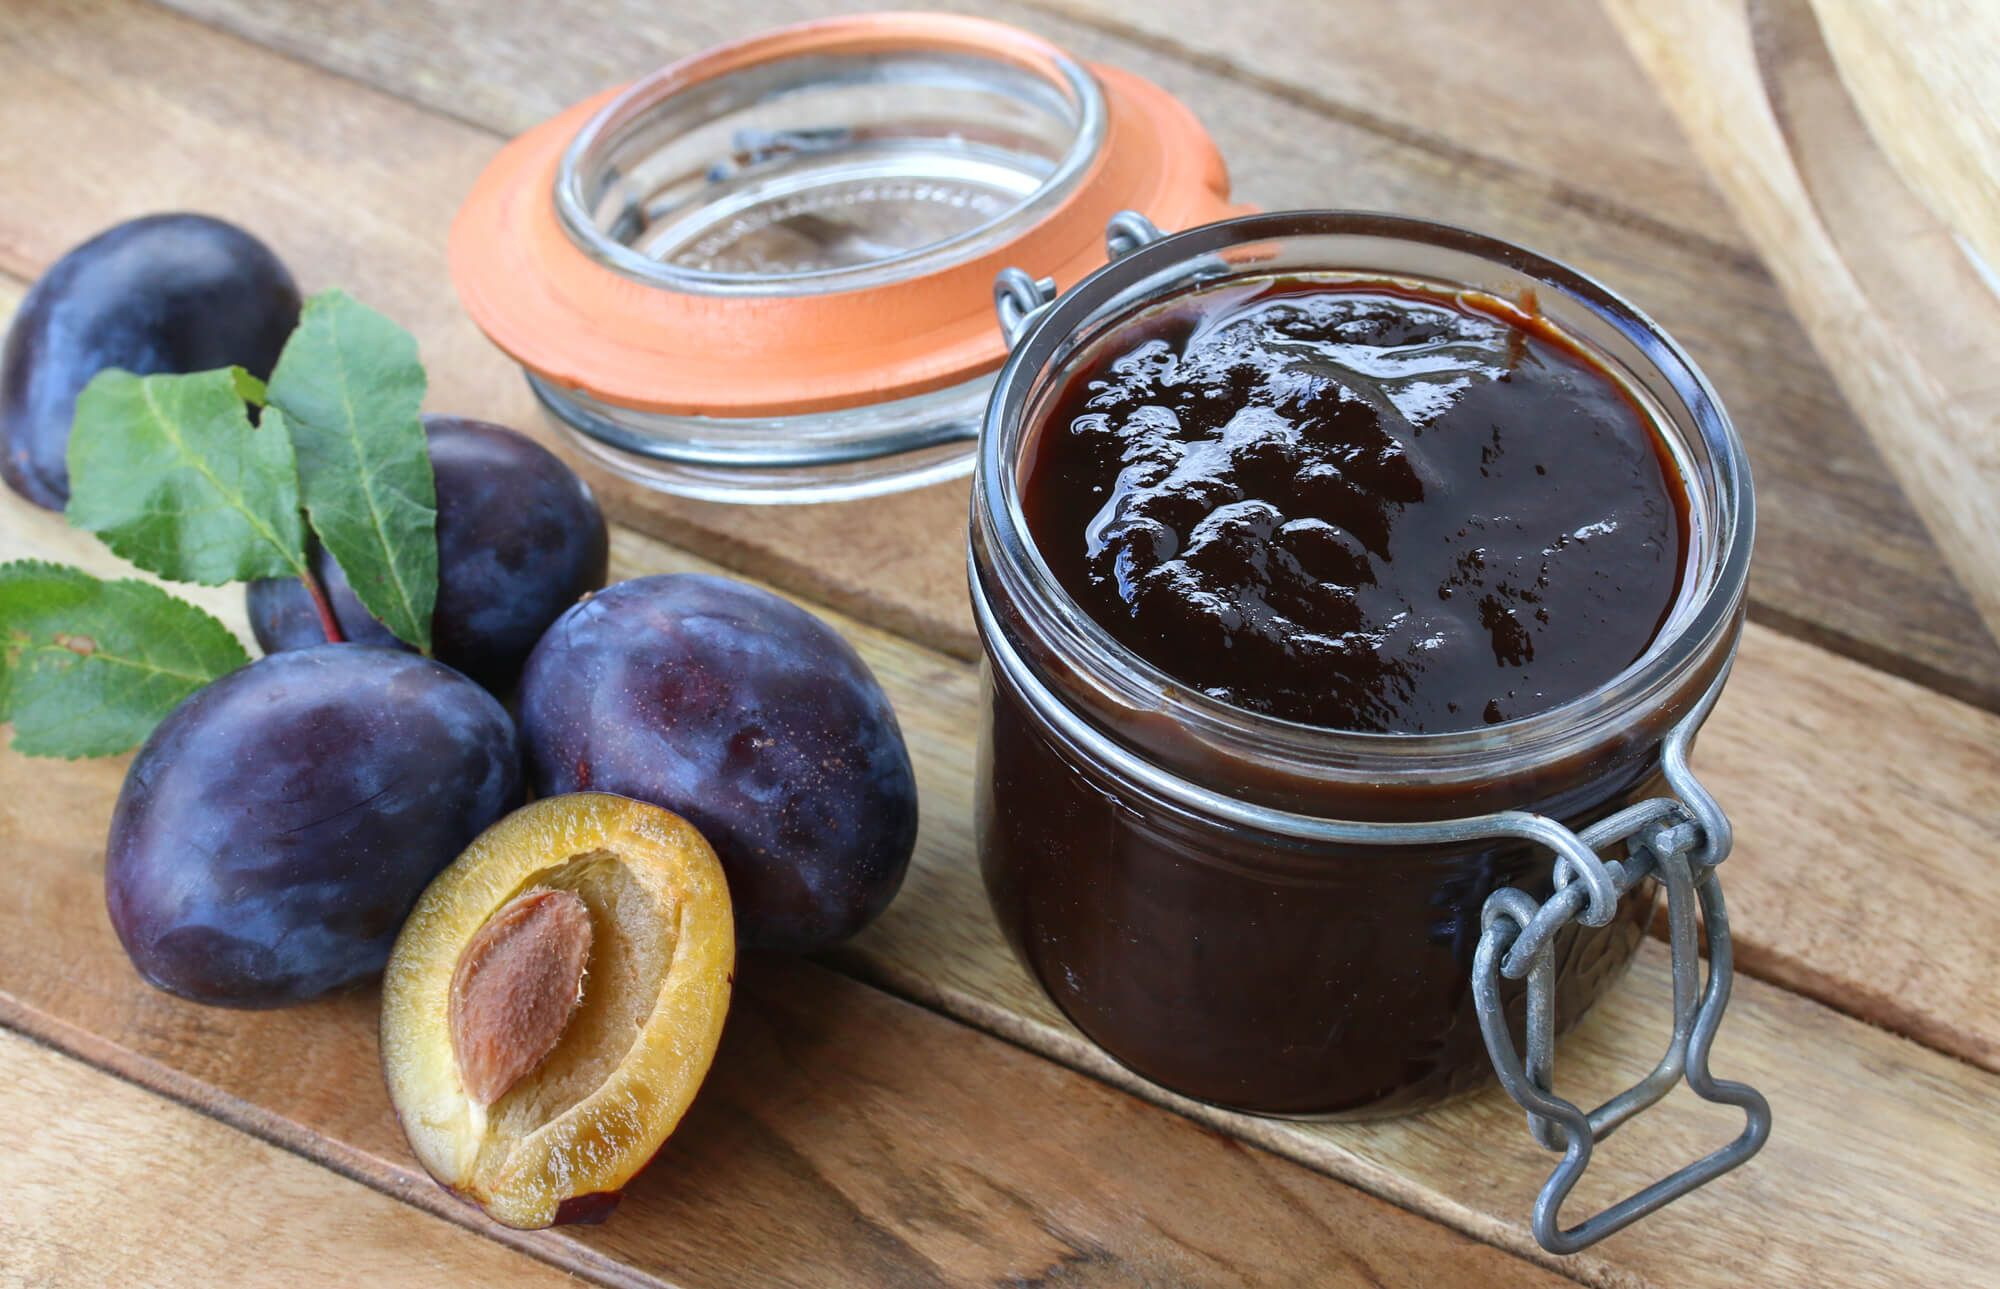 Plum Butter Pflaumenmus Recipe Jelly Recipes Plum Butter Sweets Recipes